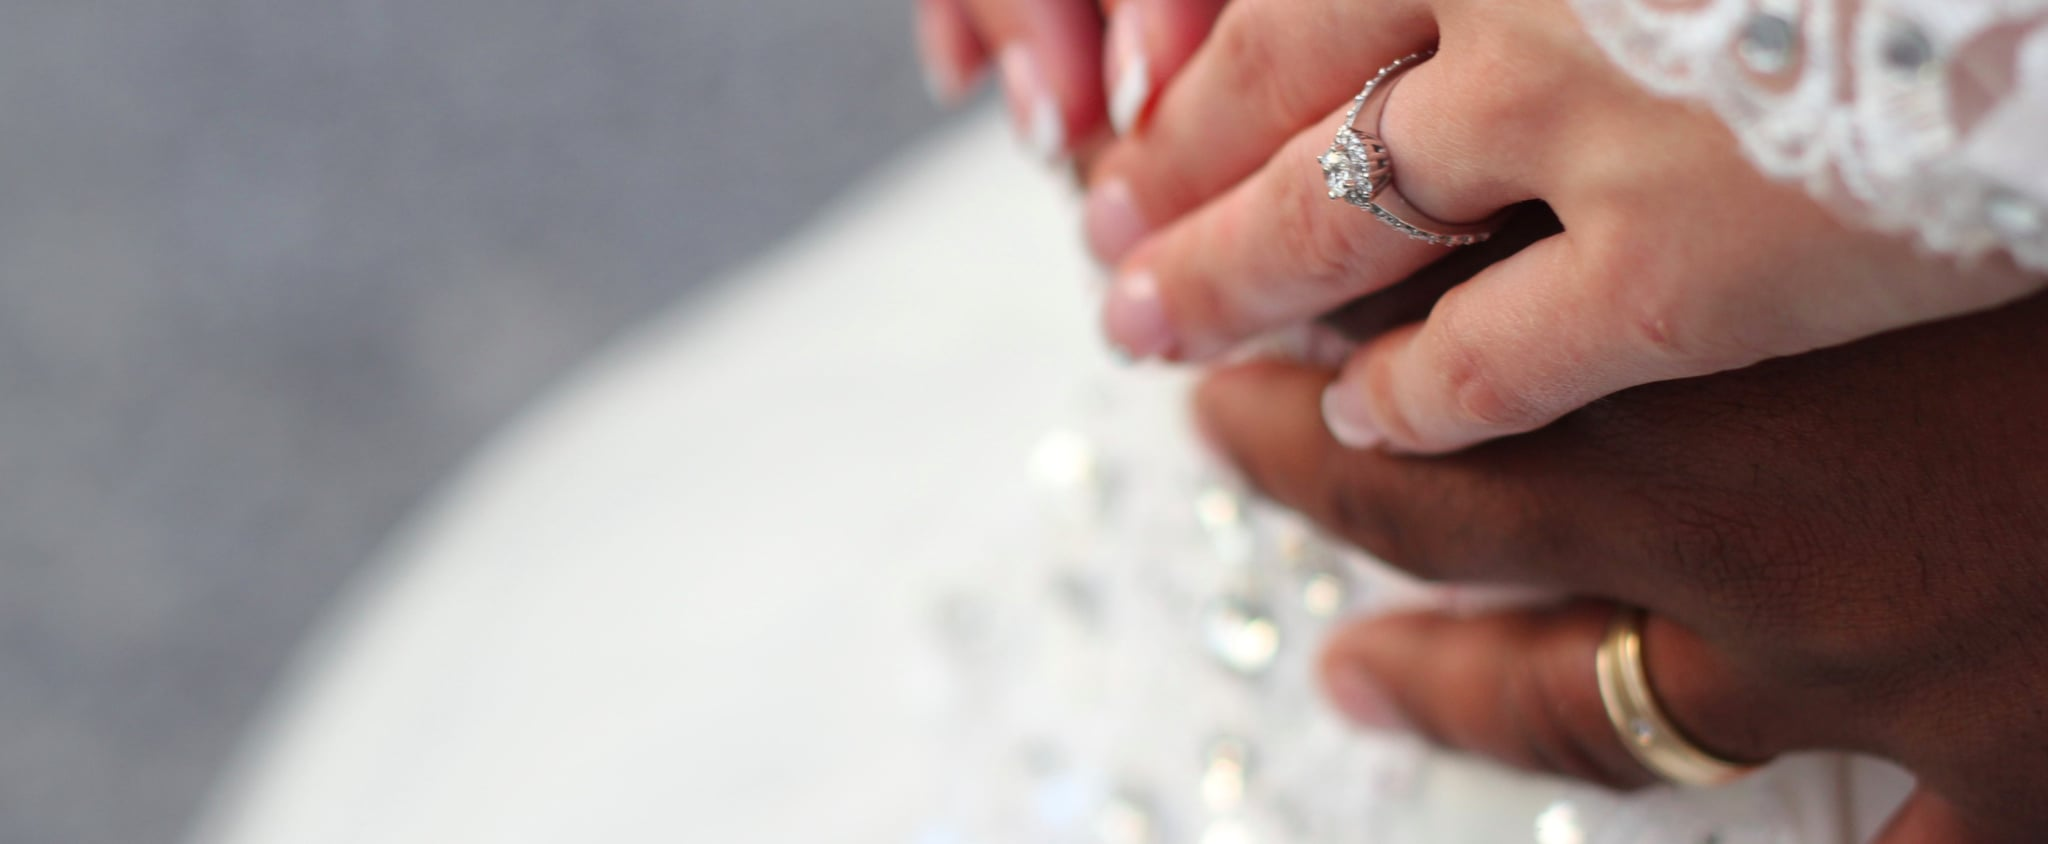 Here's Why We Have a Specific Finger Designated For Wedding Bands